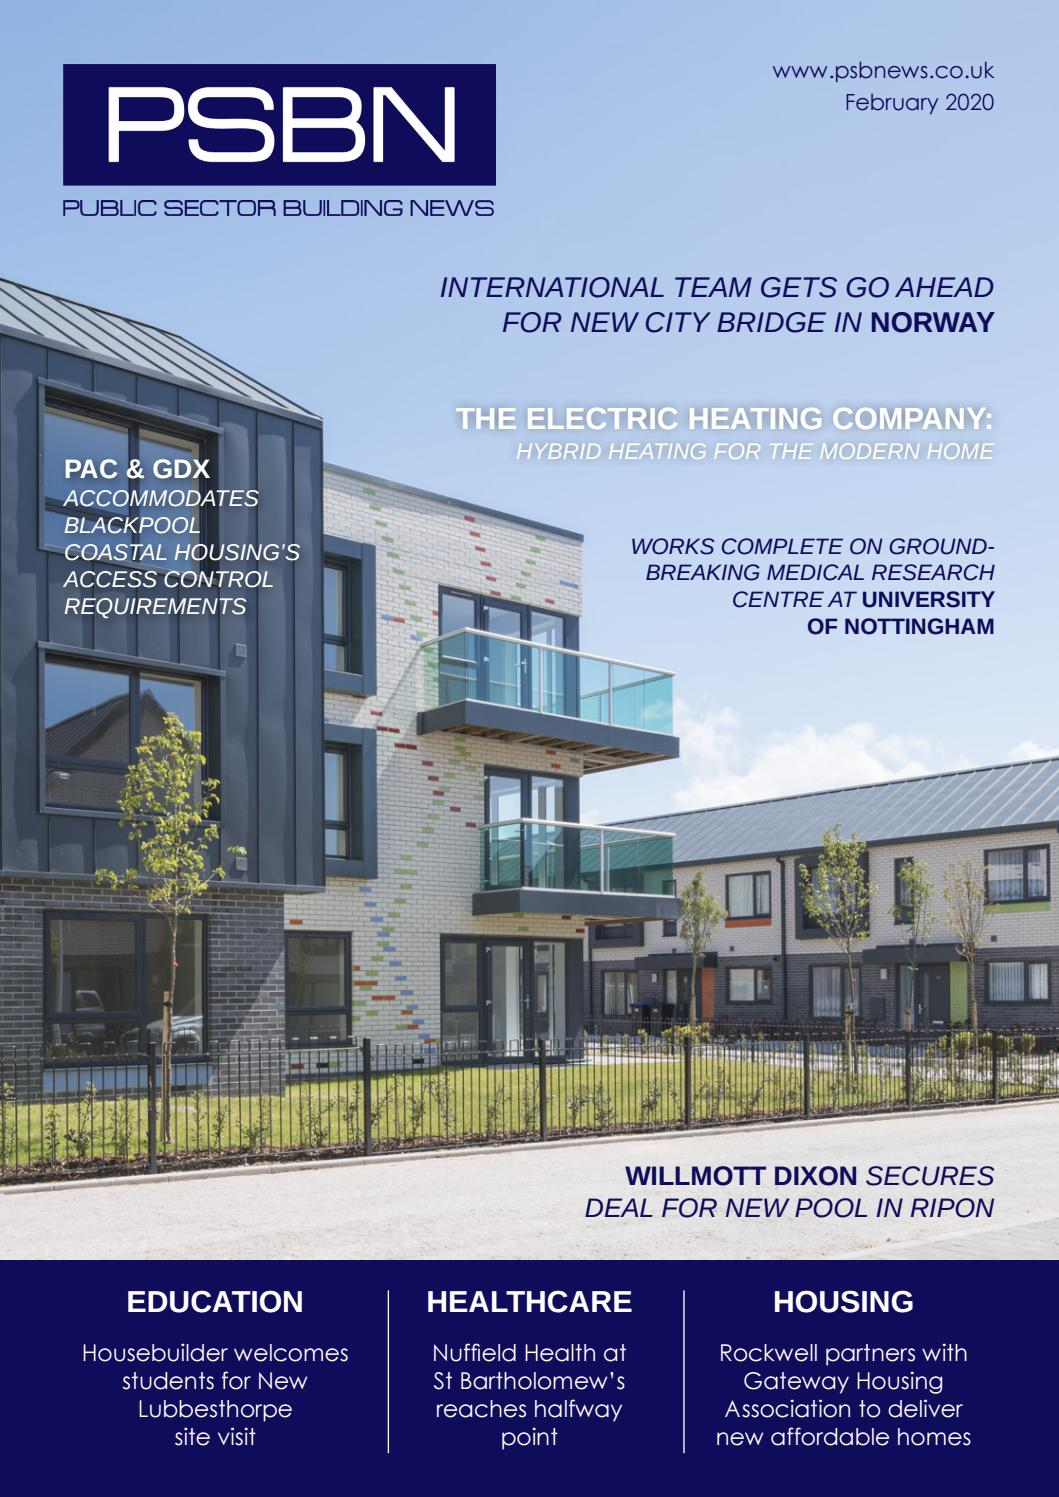 Public Sector Building News February 2020 By Lapthorn Media Issuu